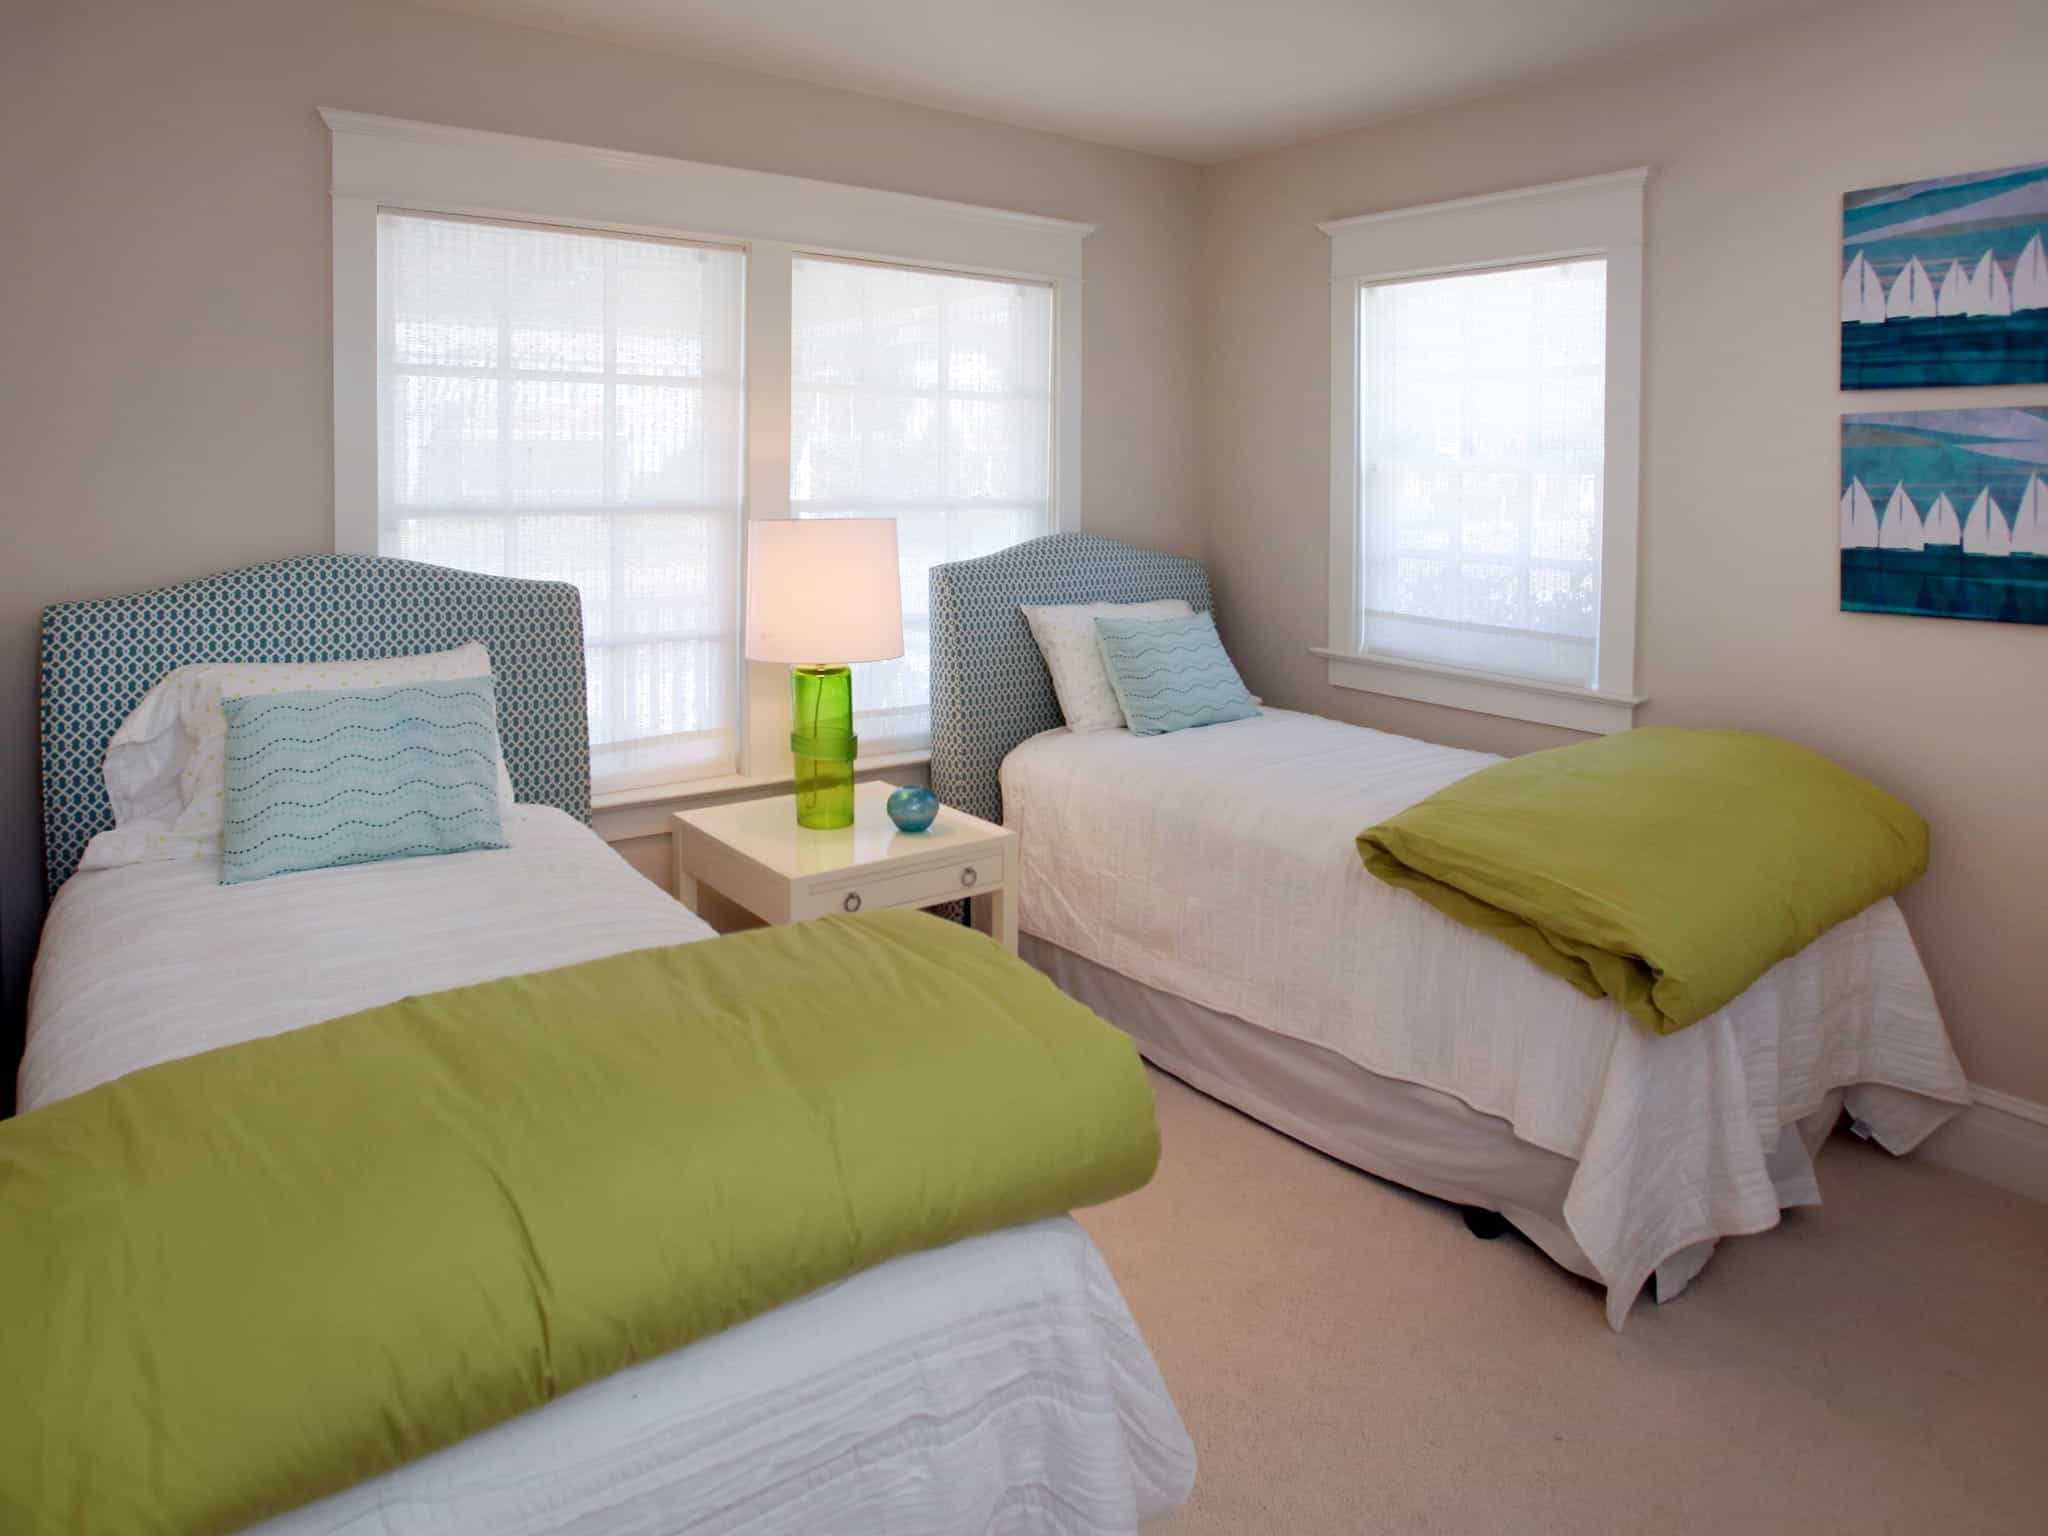 Transitional Kids Bedroom Gets Comfy With Blue And Green Twin Beds (Image 27 of 27)